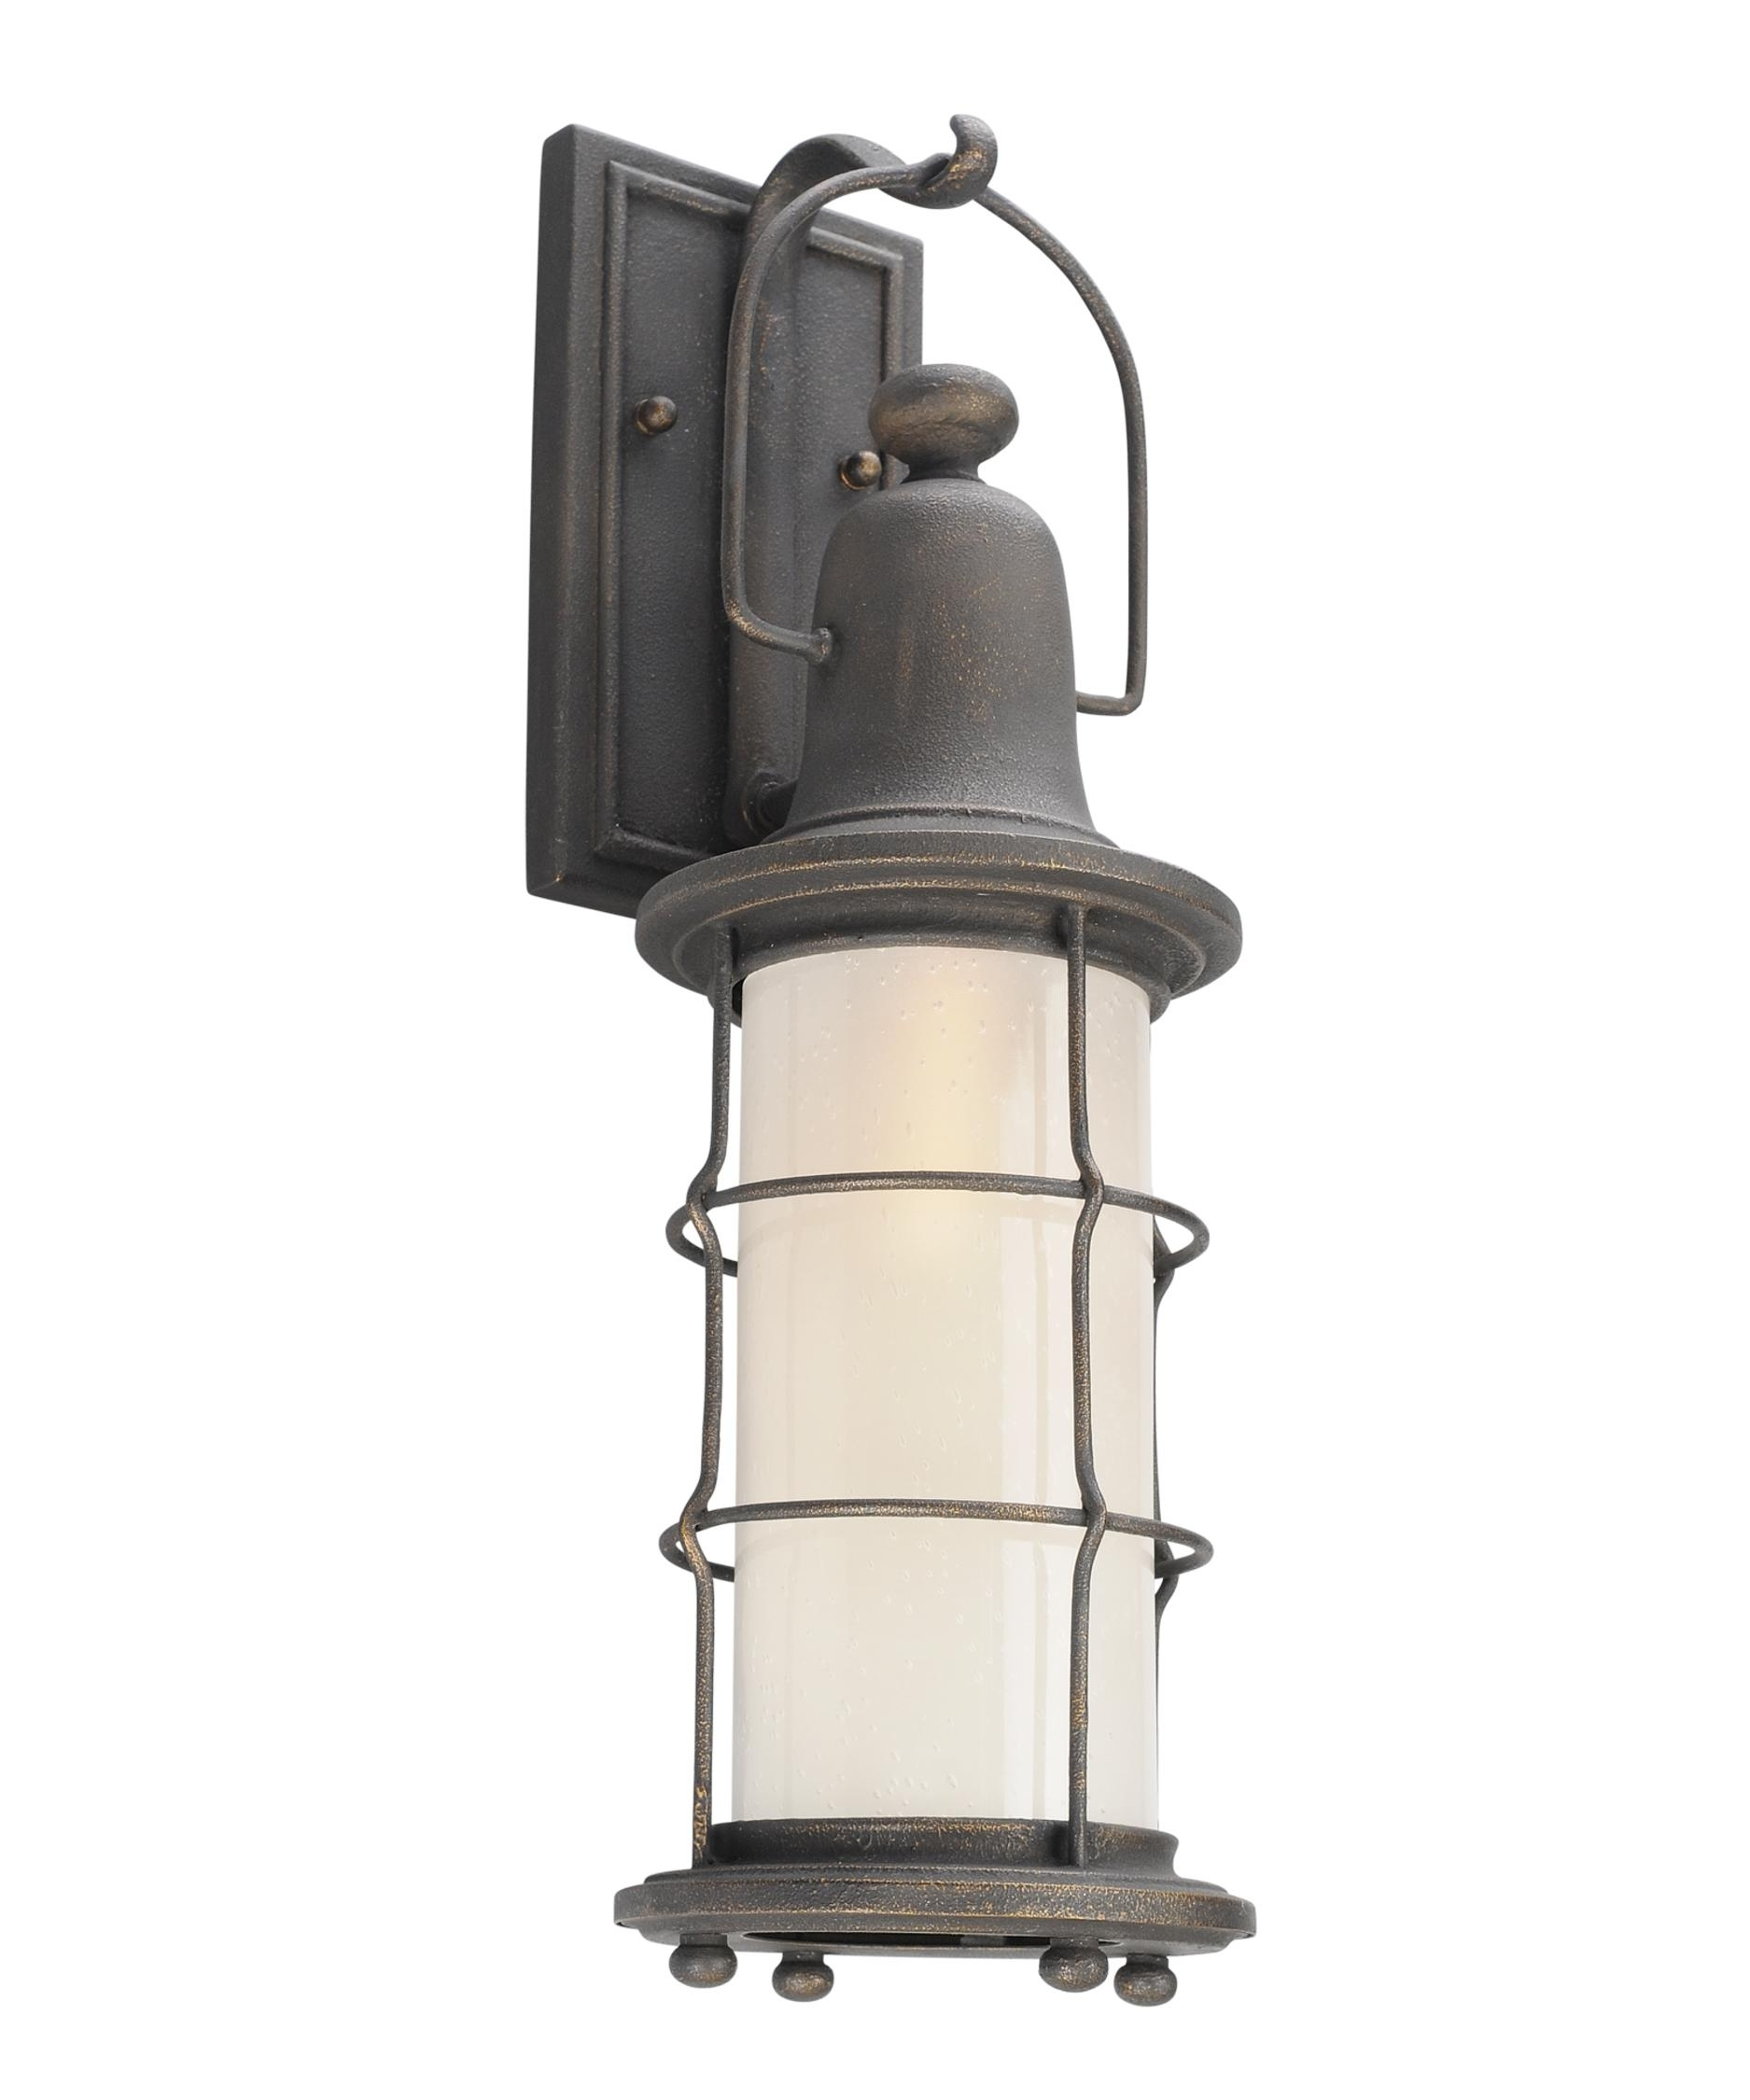 Troy Lighting B4441 Maritime 6 Inch Wide 1 Light Outdoor Wall Light intended for Outdoor Nautical Lanterns (Image 18 of 20)